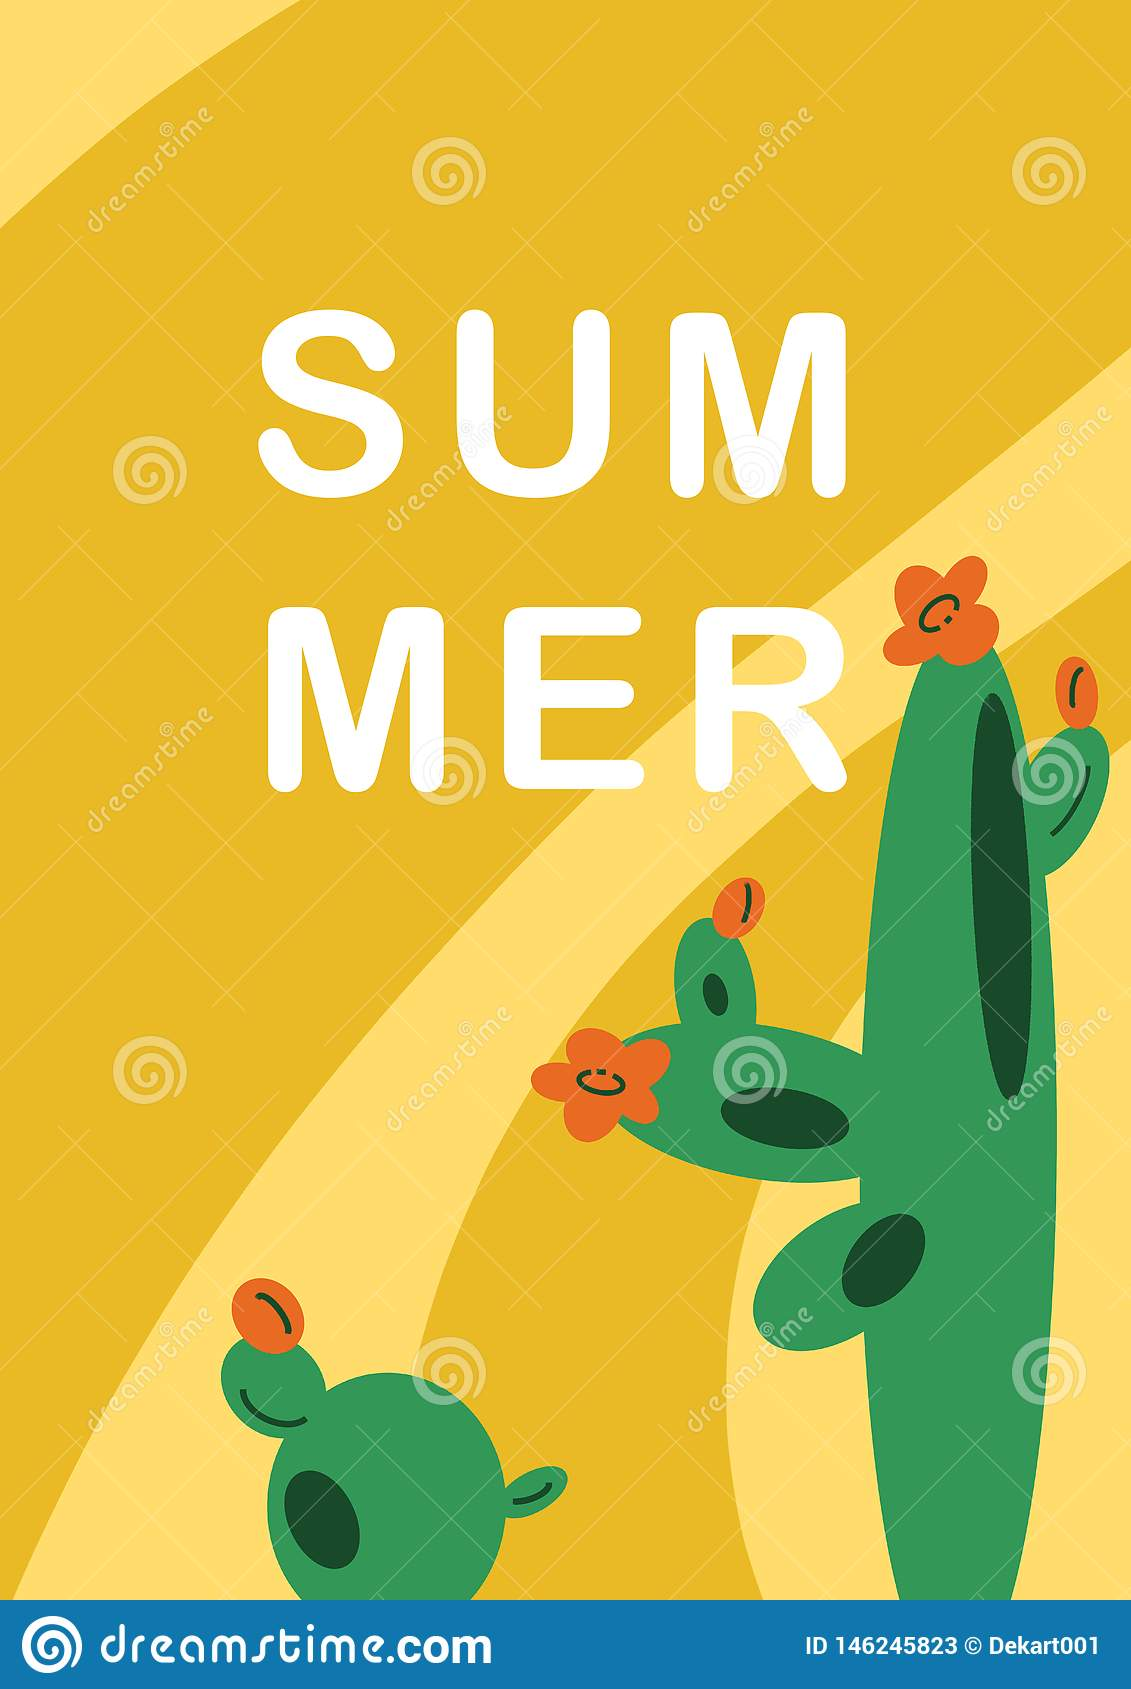 Hand-drawn illustration background with Mexican cactuses in flat cartoon style.